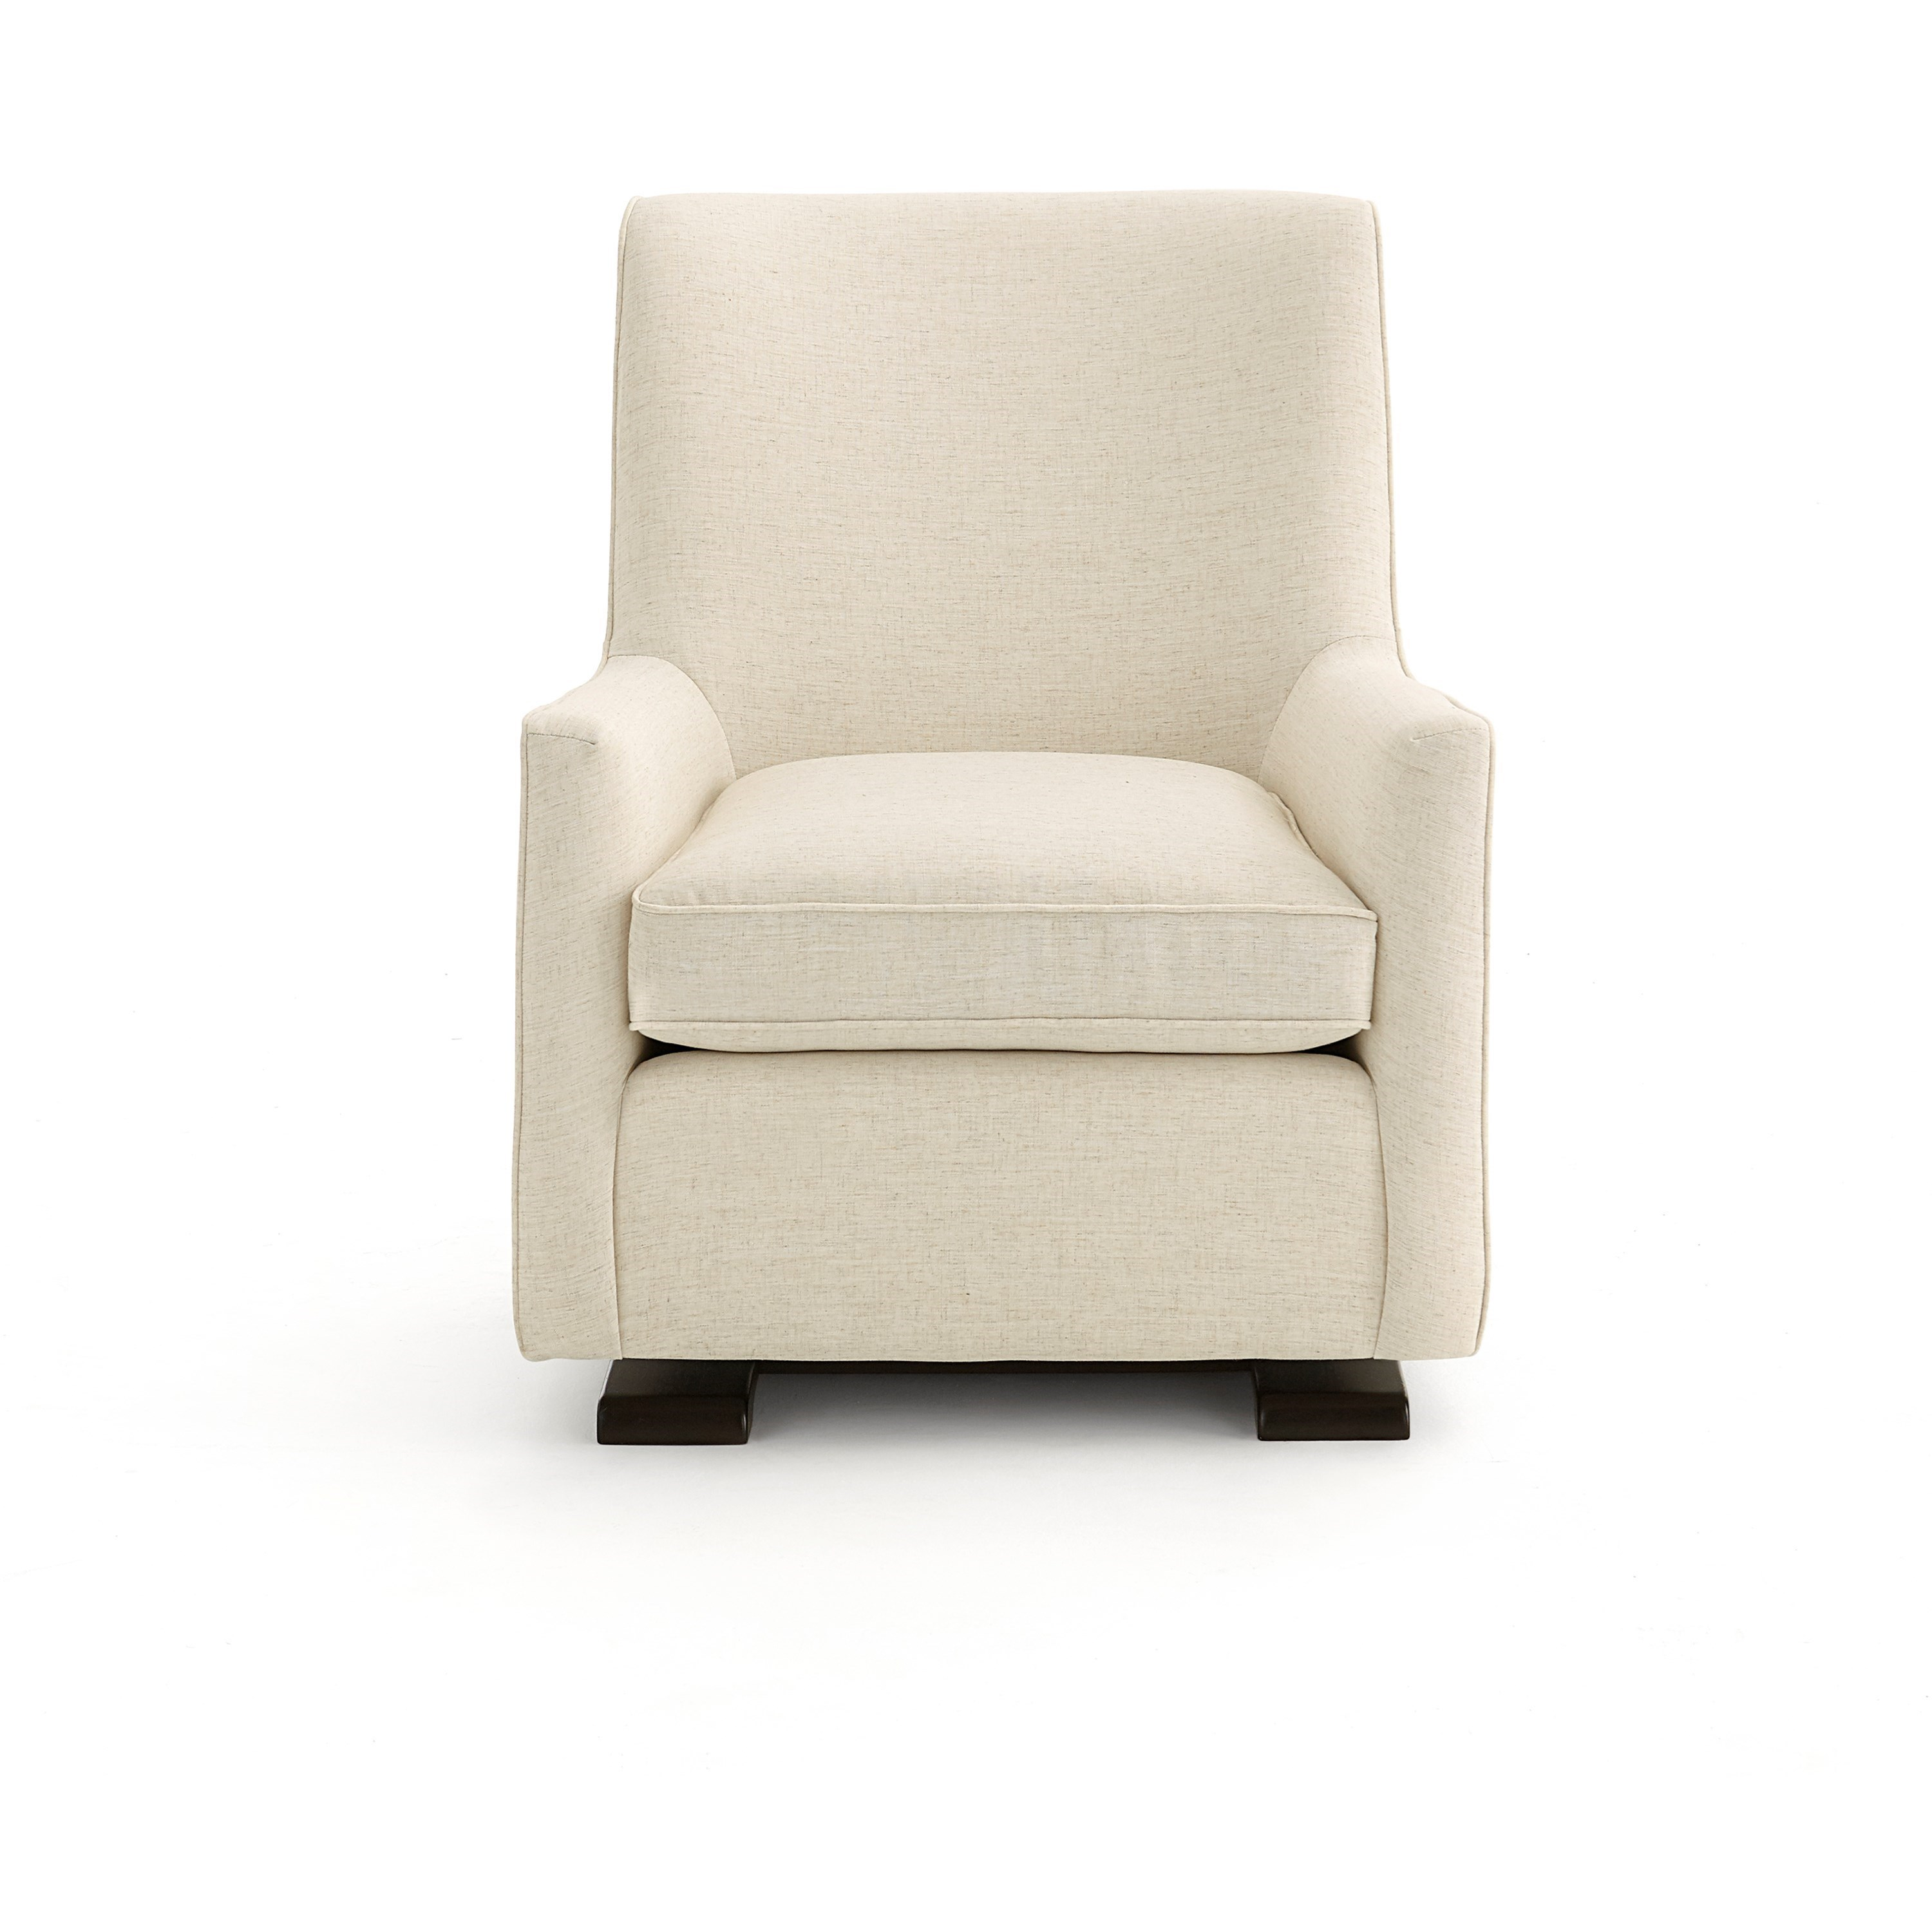 Best Swivel Chair Best Home Furnishings Coral Contemporary Swivel Gliding